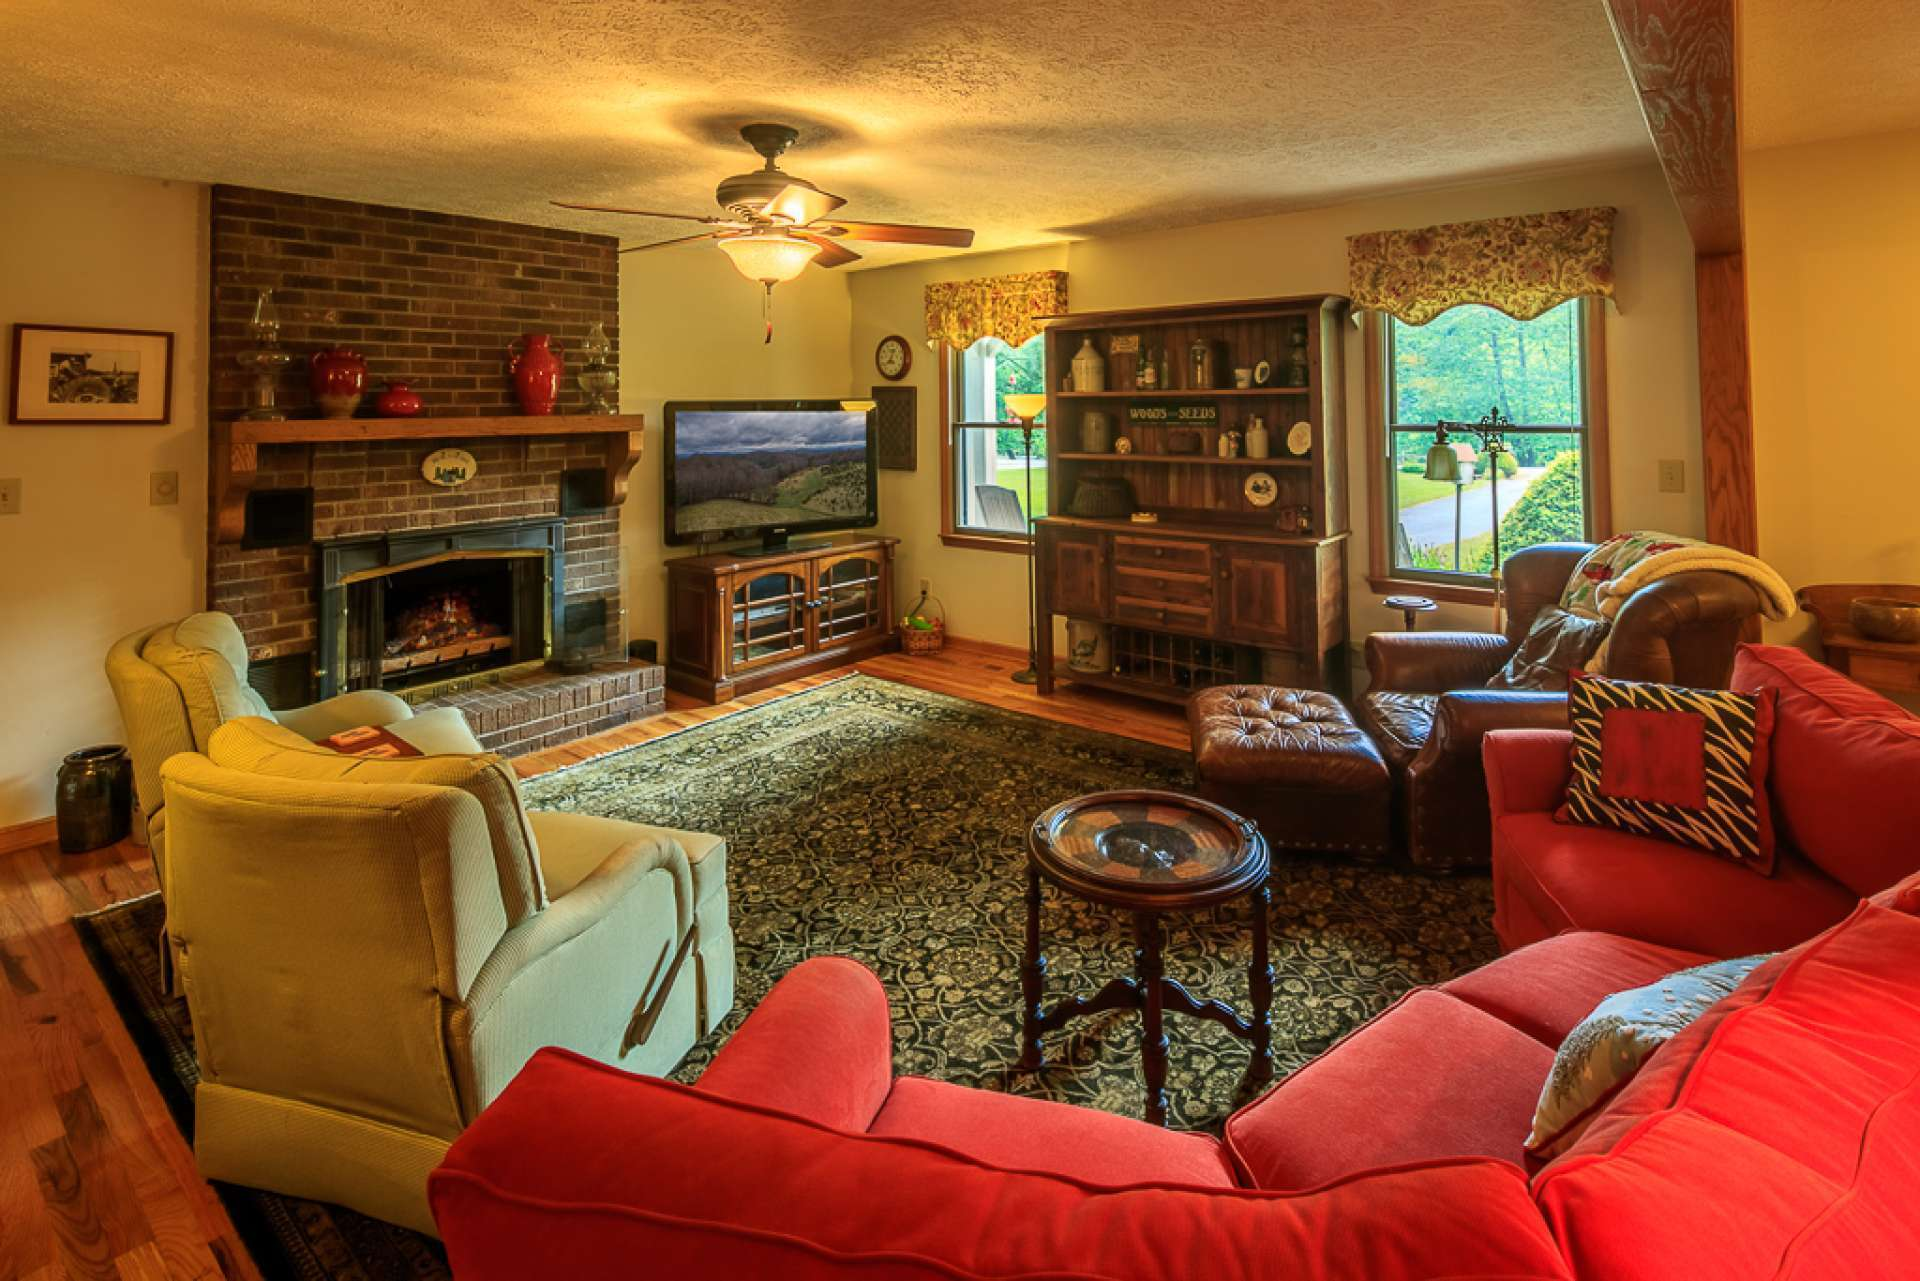 A spacious living room welcomes you and your guests to come in and experience country living in grand style.